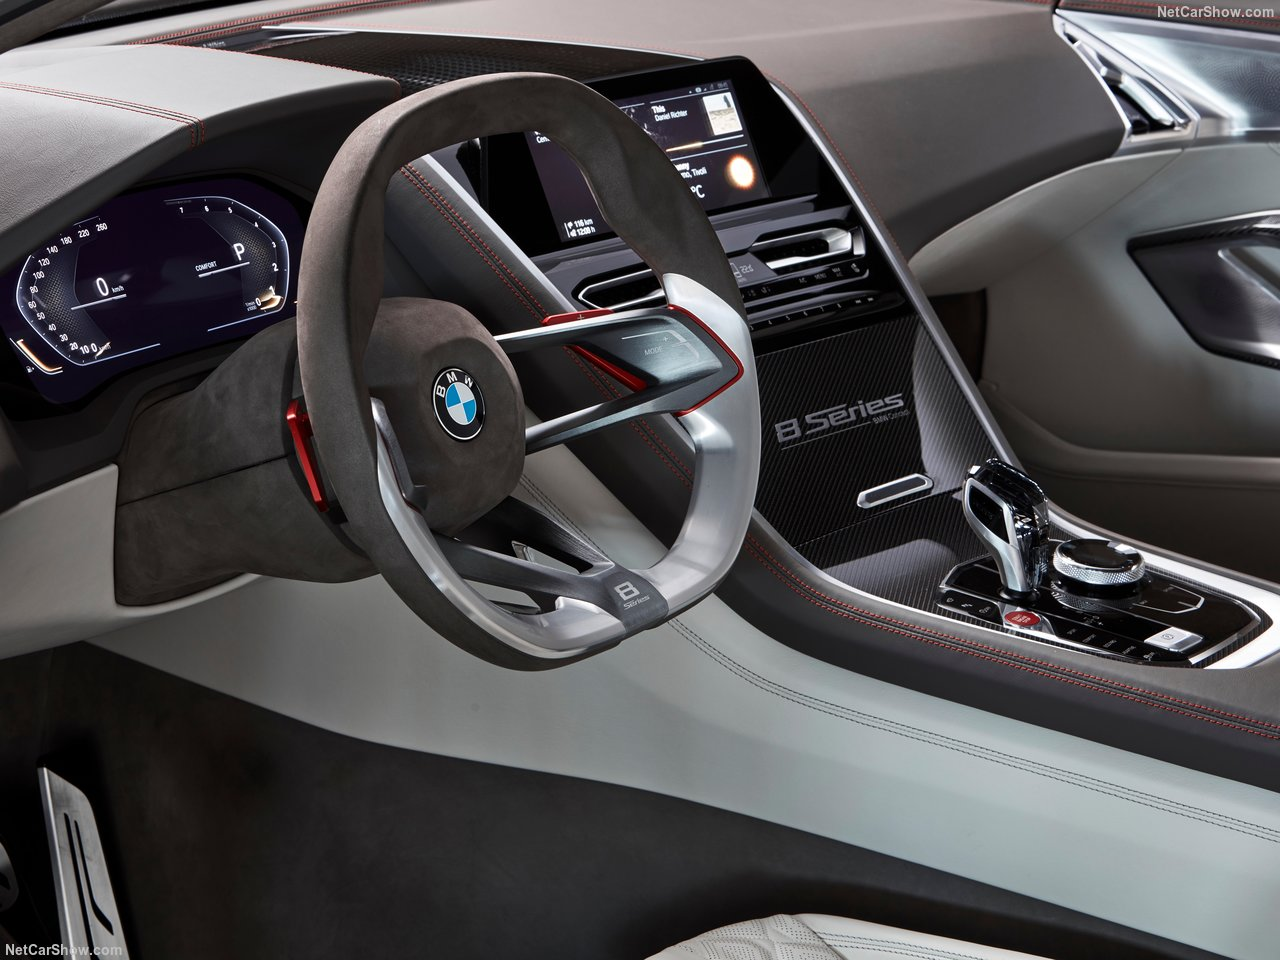 Bmw 8 series concept 2018 interior image gallery pictures for Bmw serie 3 2018 interior